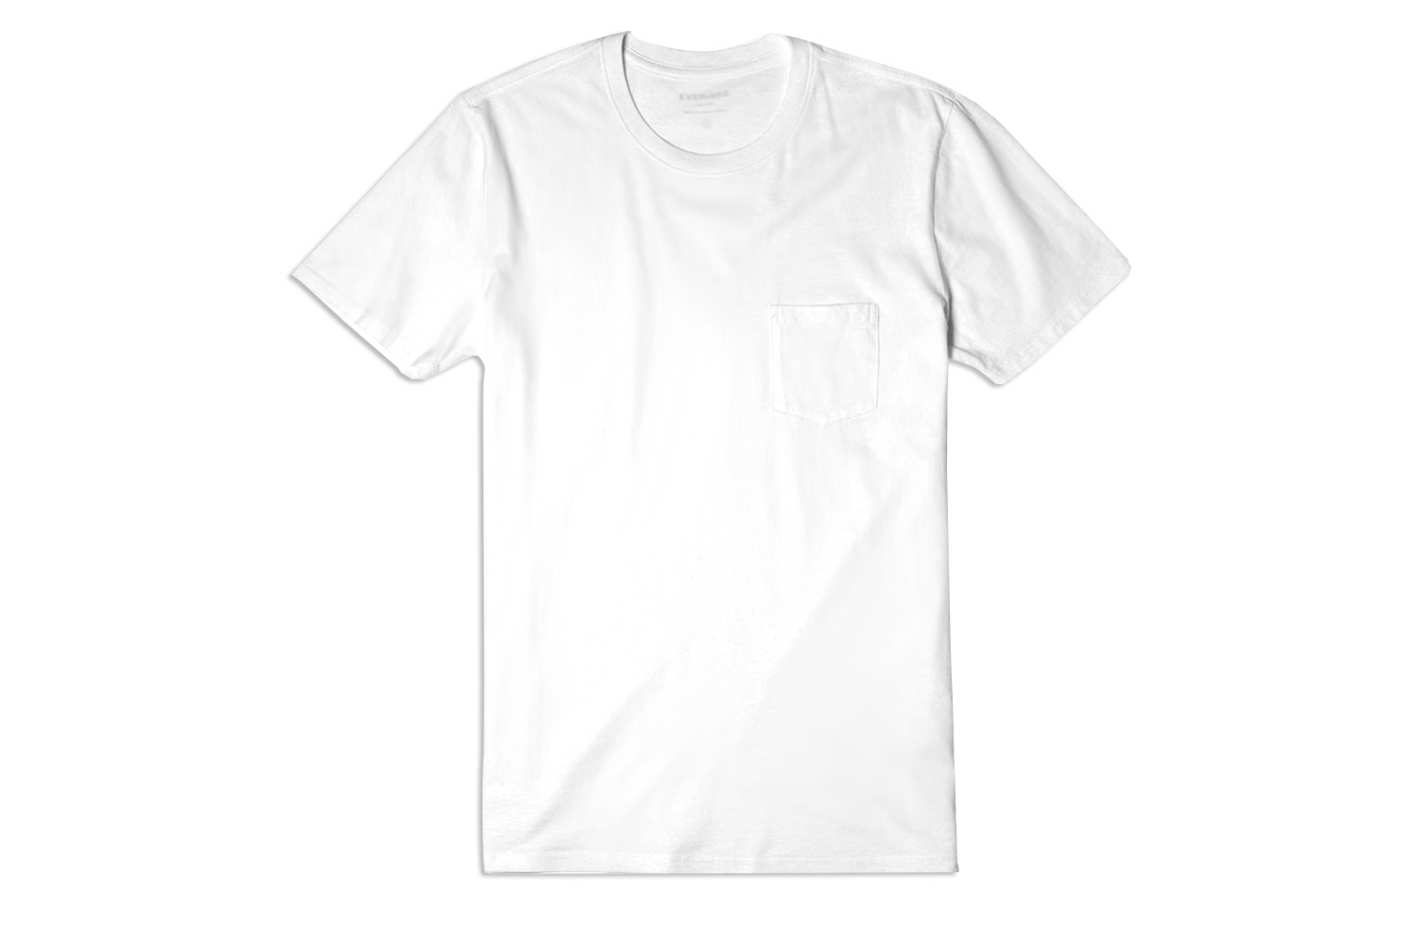 white shirt u201cthe best white t-shirt for women is soft, works tucked and not, and  strikes TMCMJPY